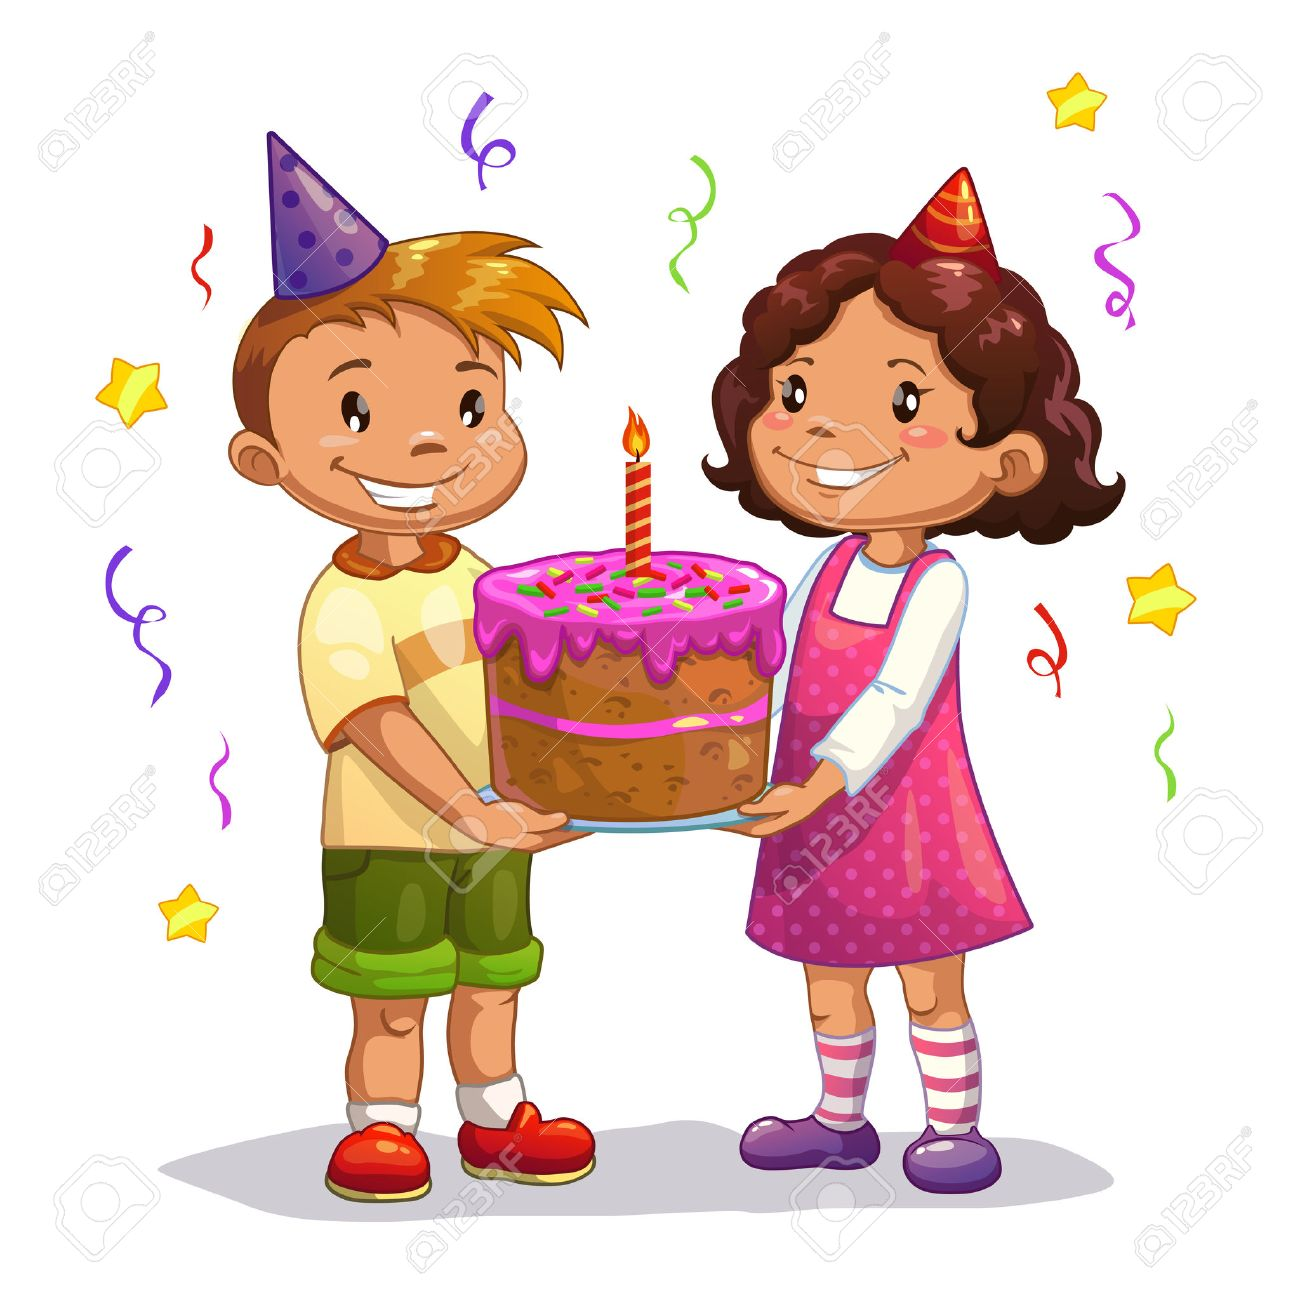 Little Cartoon Kids With Big Birthday Cake Isolated Vector Royalty